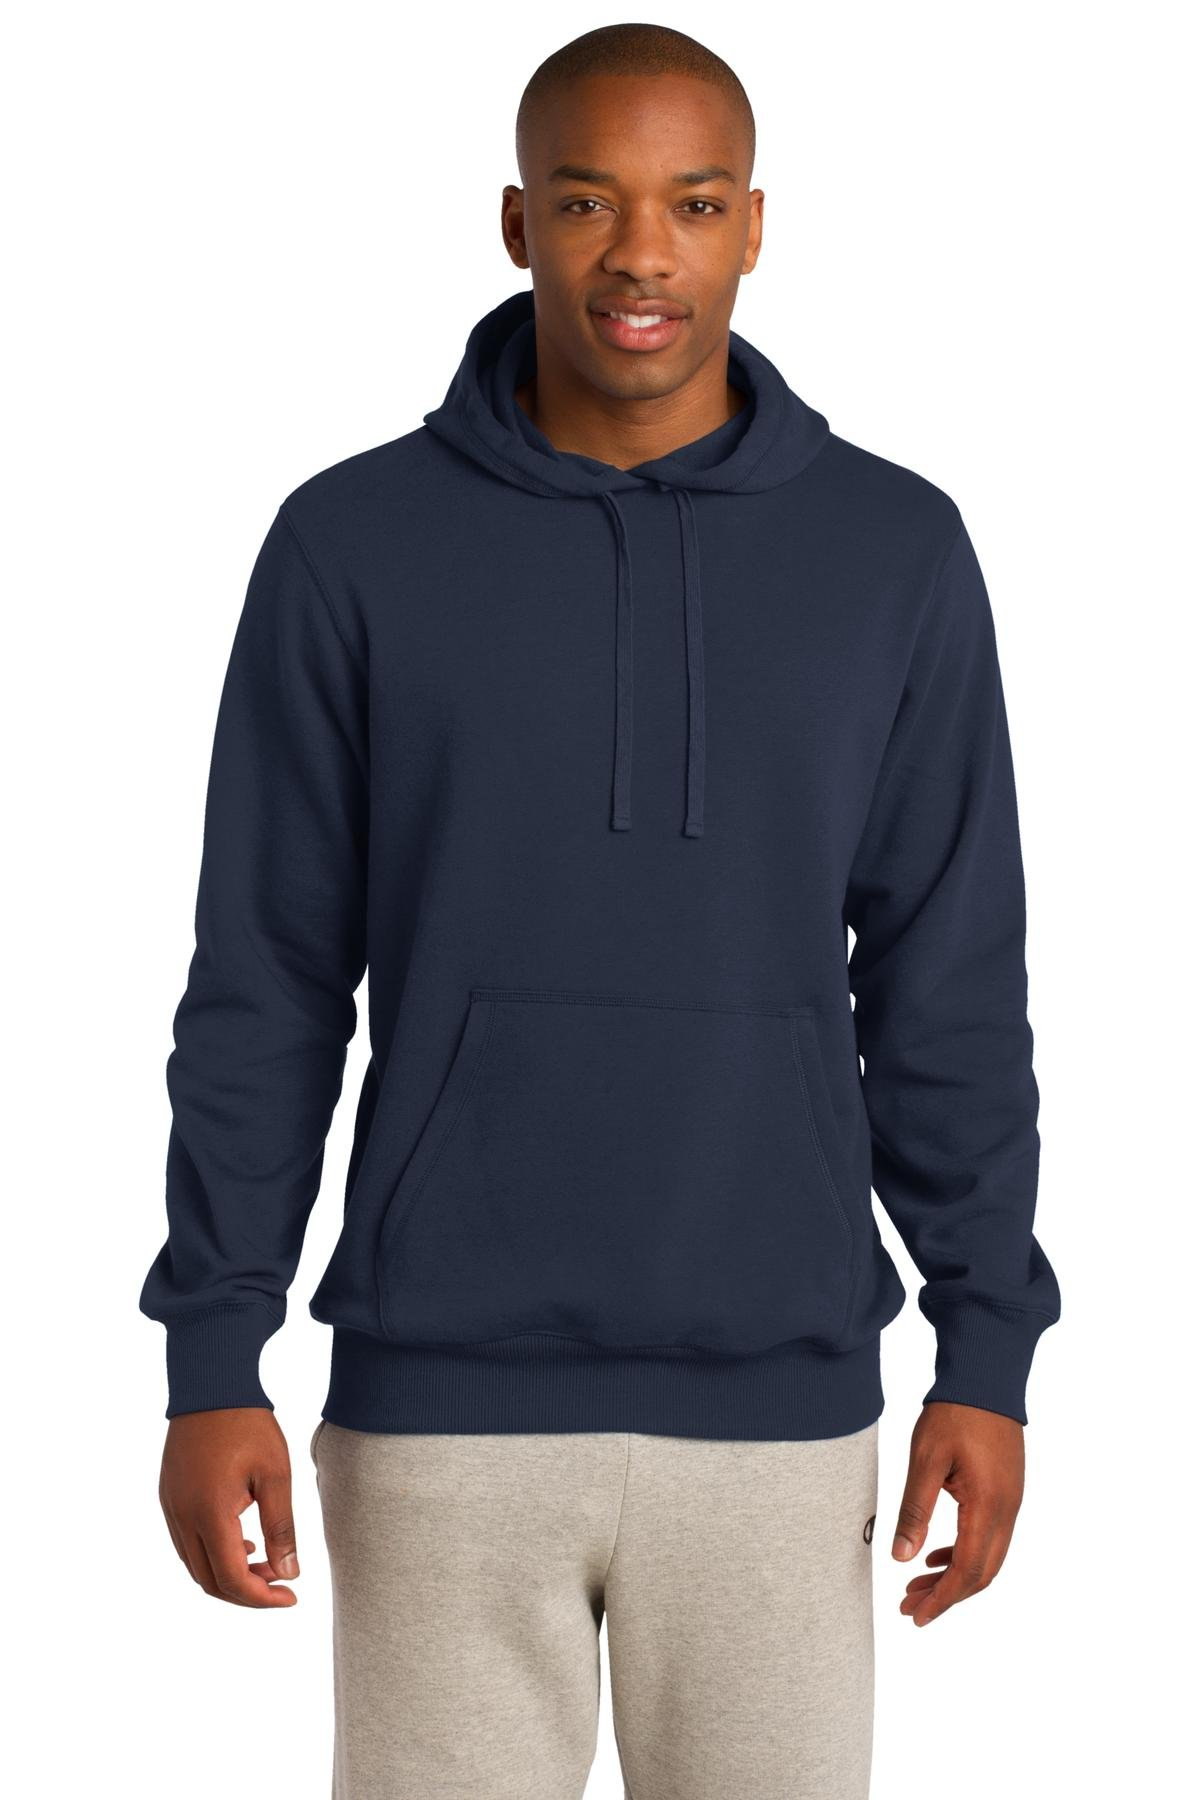 Sport-Tek Pullover Hooded Sweatshirt. ST254 True Navy 3XL by Sport-Tek